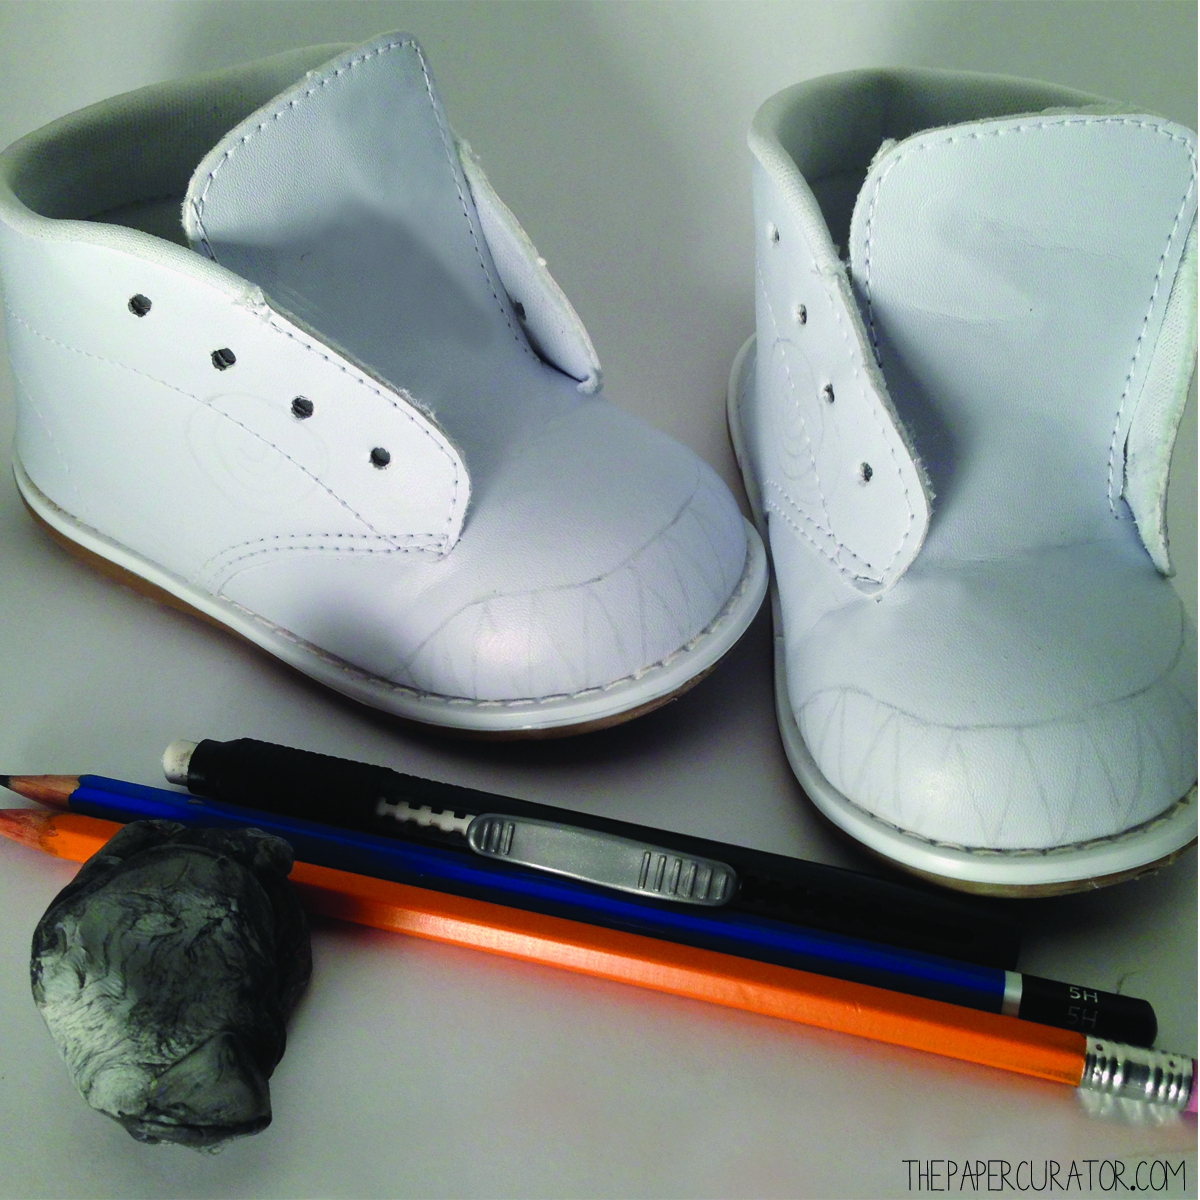 USE YOUR PENCIL AND SKETCH THE DESIGNS YOU WANT TO PAINT ONTO BOTH SHOES.